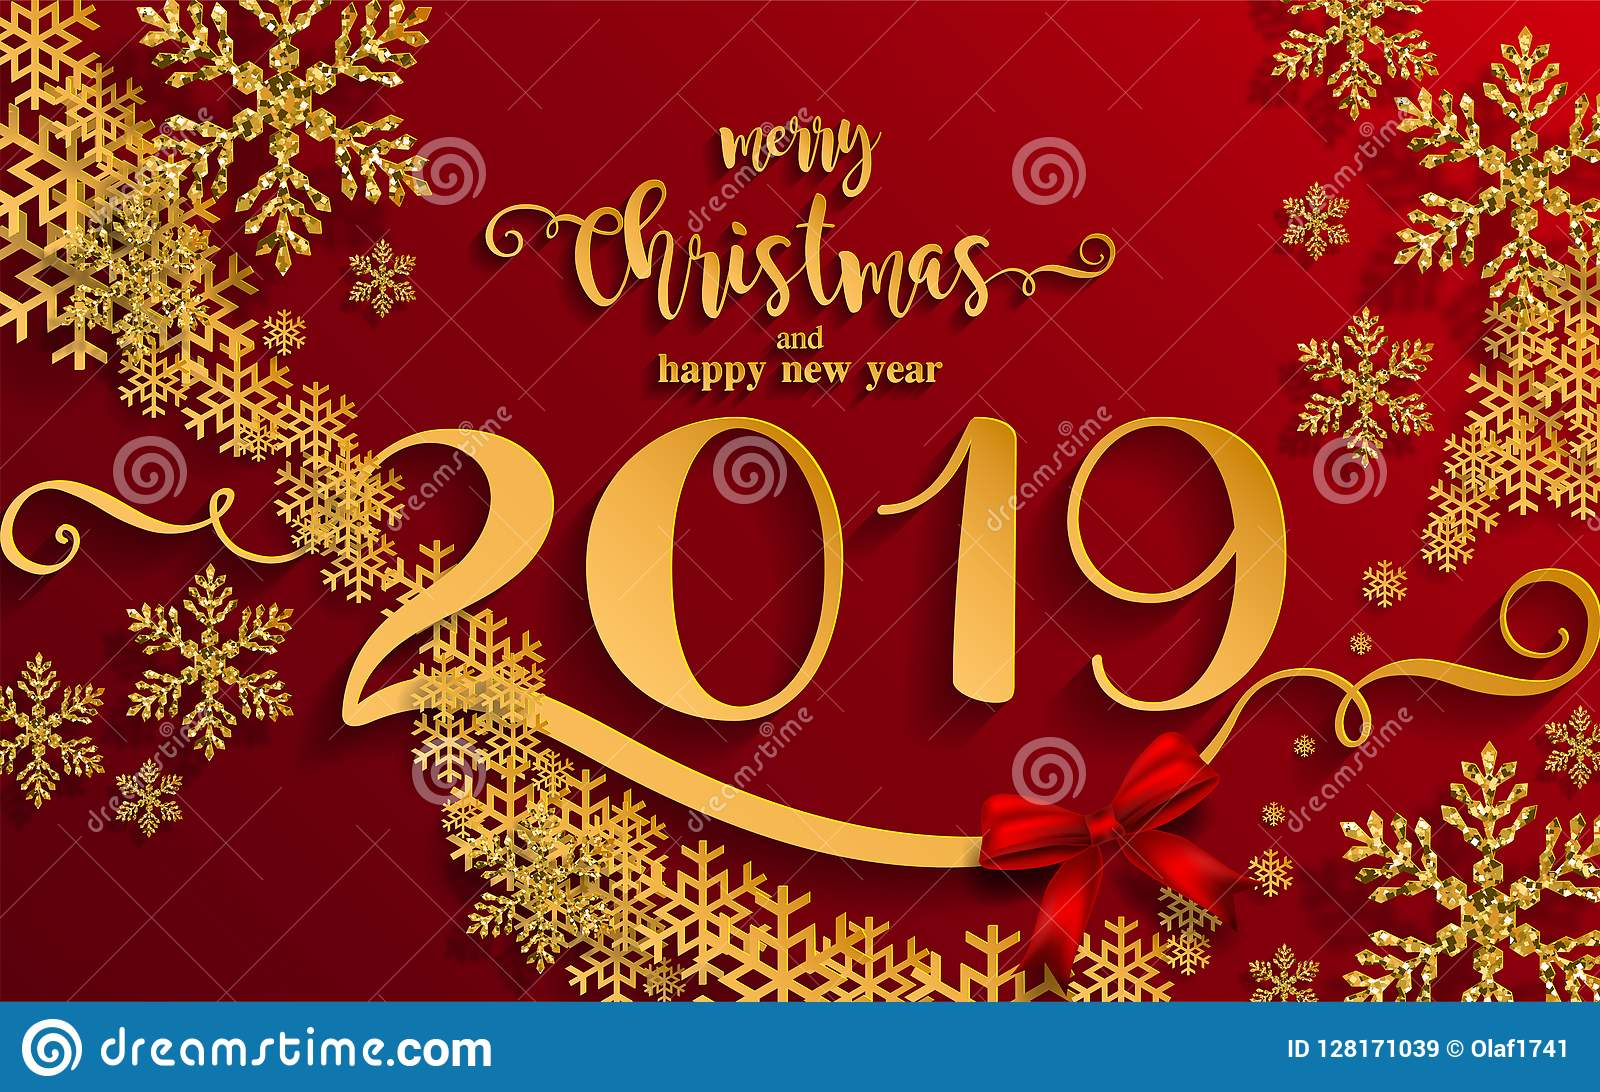 Merry Christmas Greetings And Happy New Year 2019 Stock Vector ...